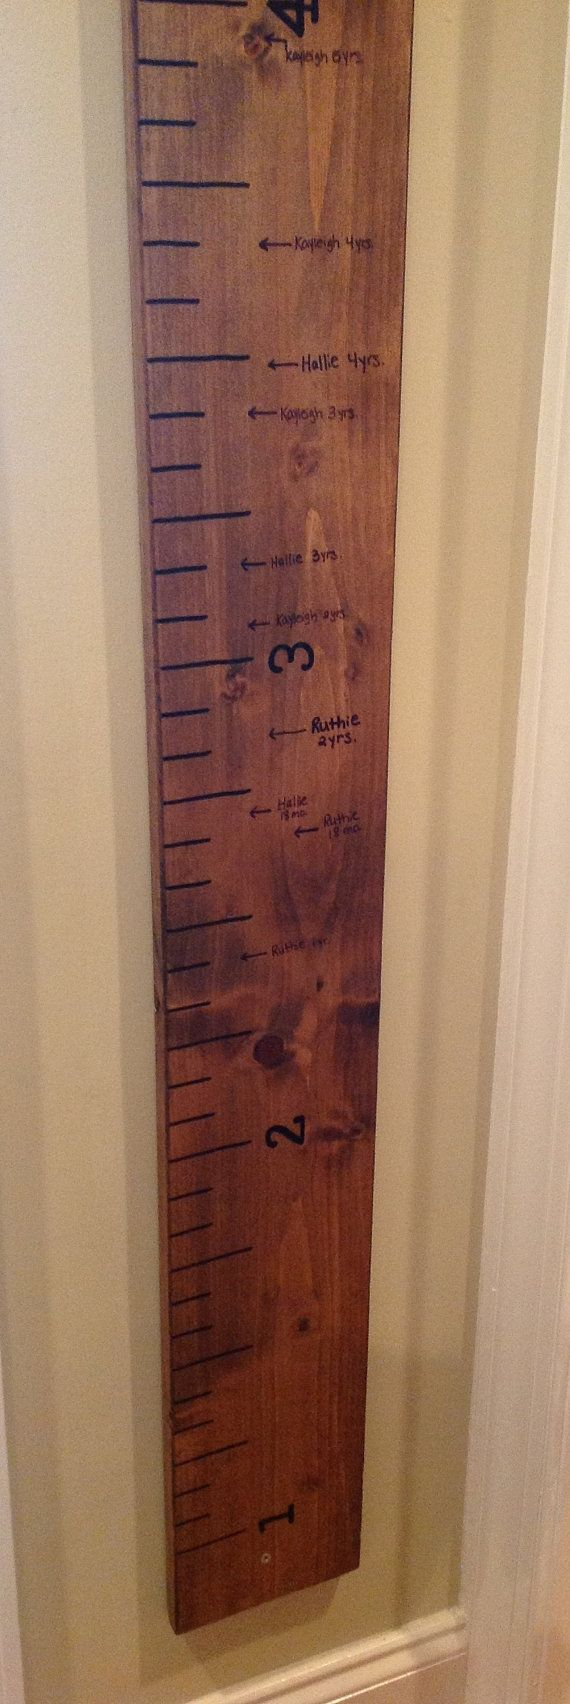 Wall-hung ruler makes measuring height a movable cinch.